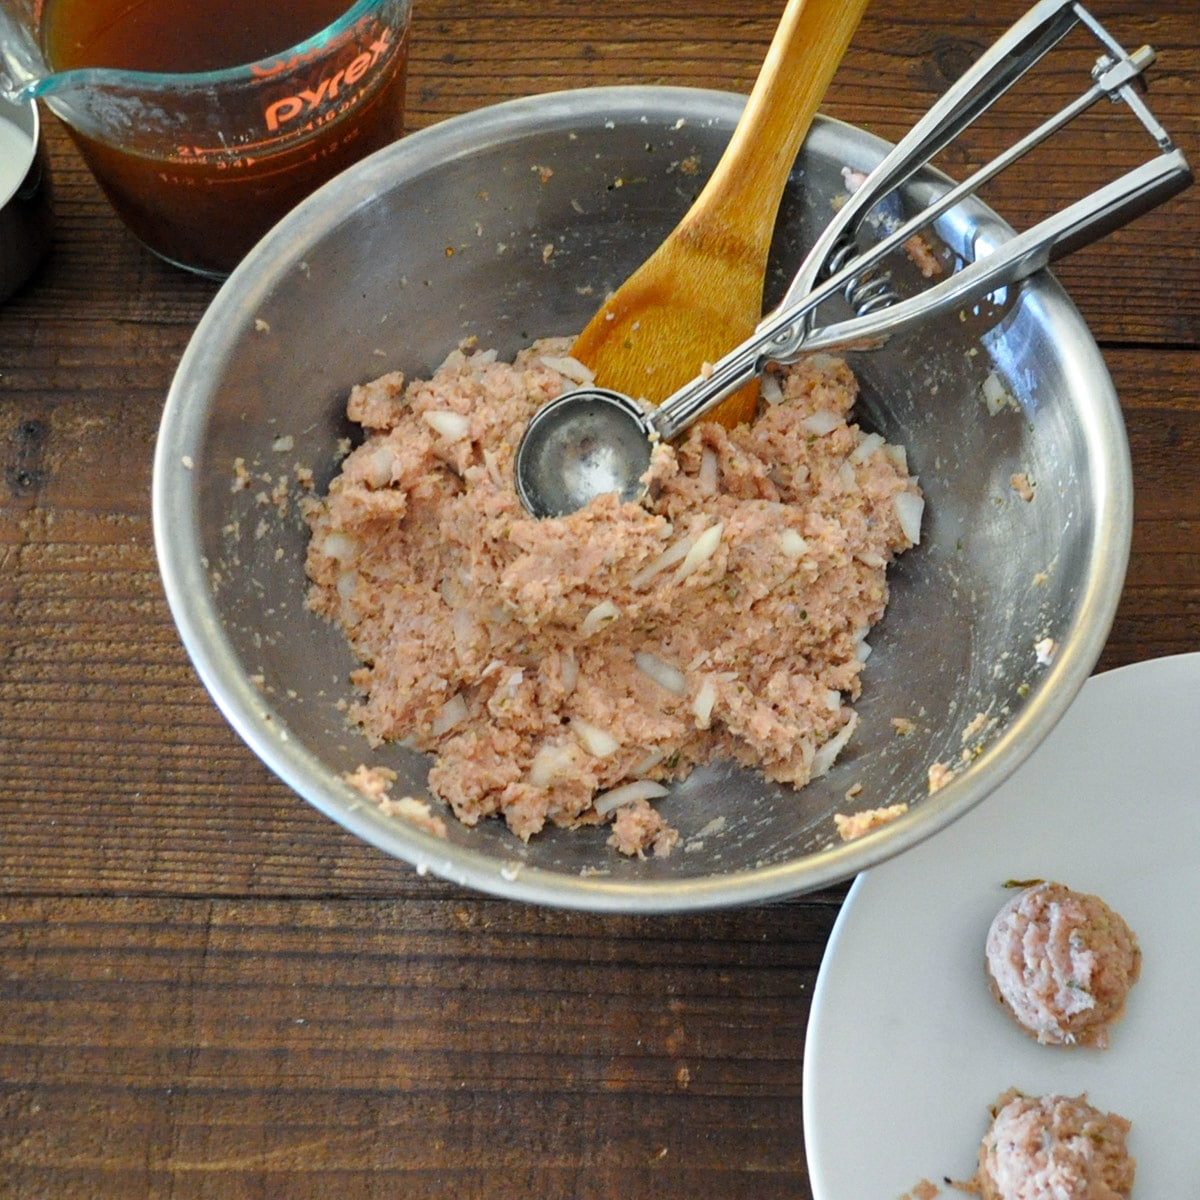 raw meatball mixture being made into meatballs using a cookie scoop